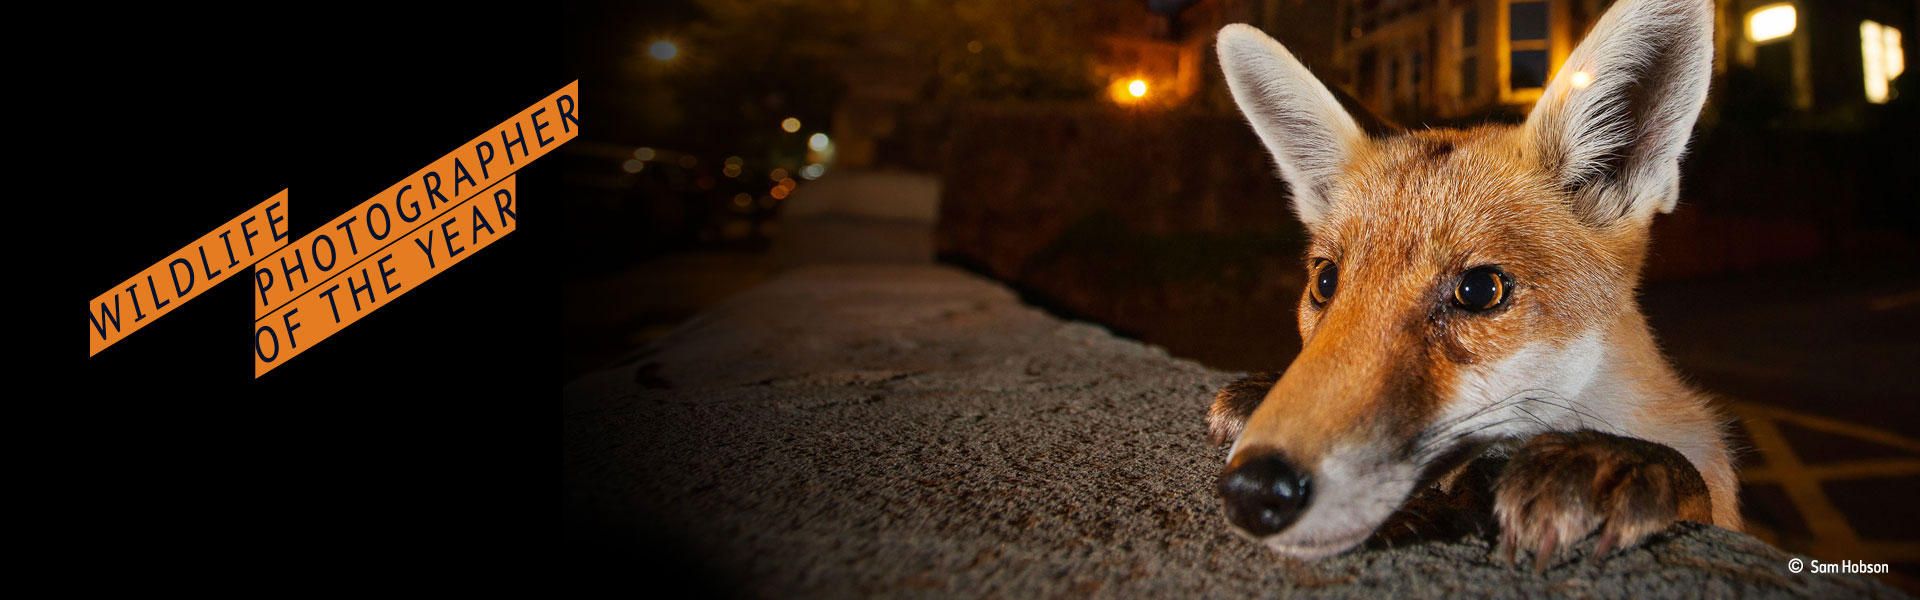 An urban red fox peers over a wall. Image by Sam Hobson.